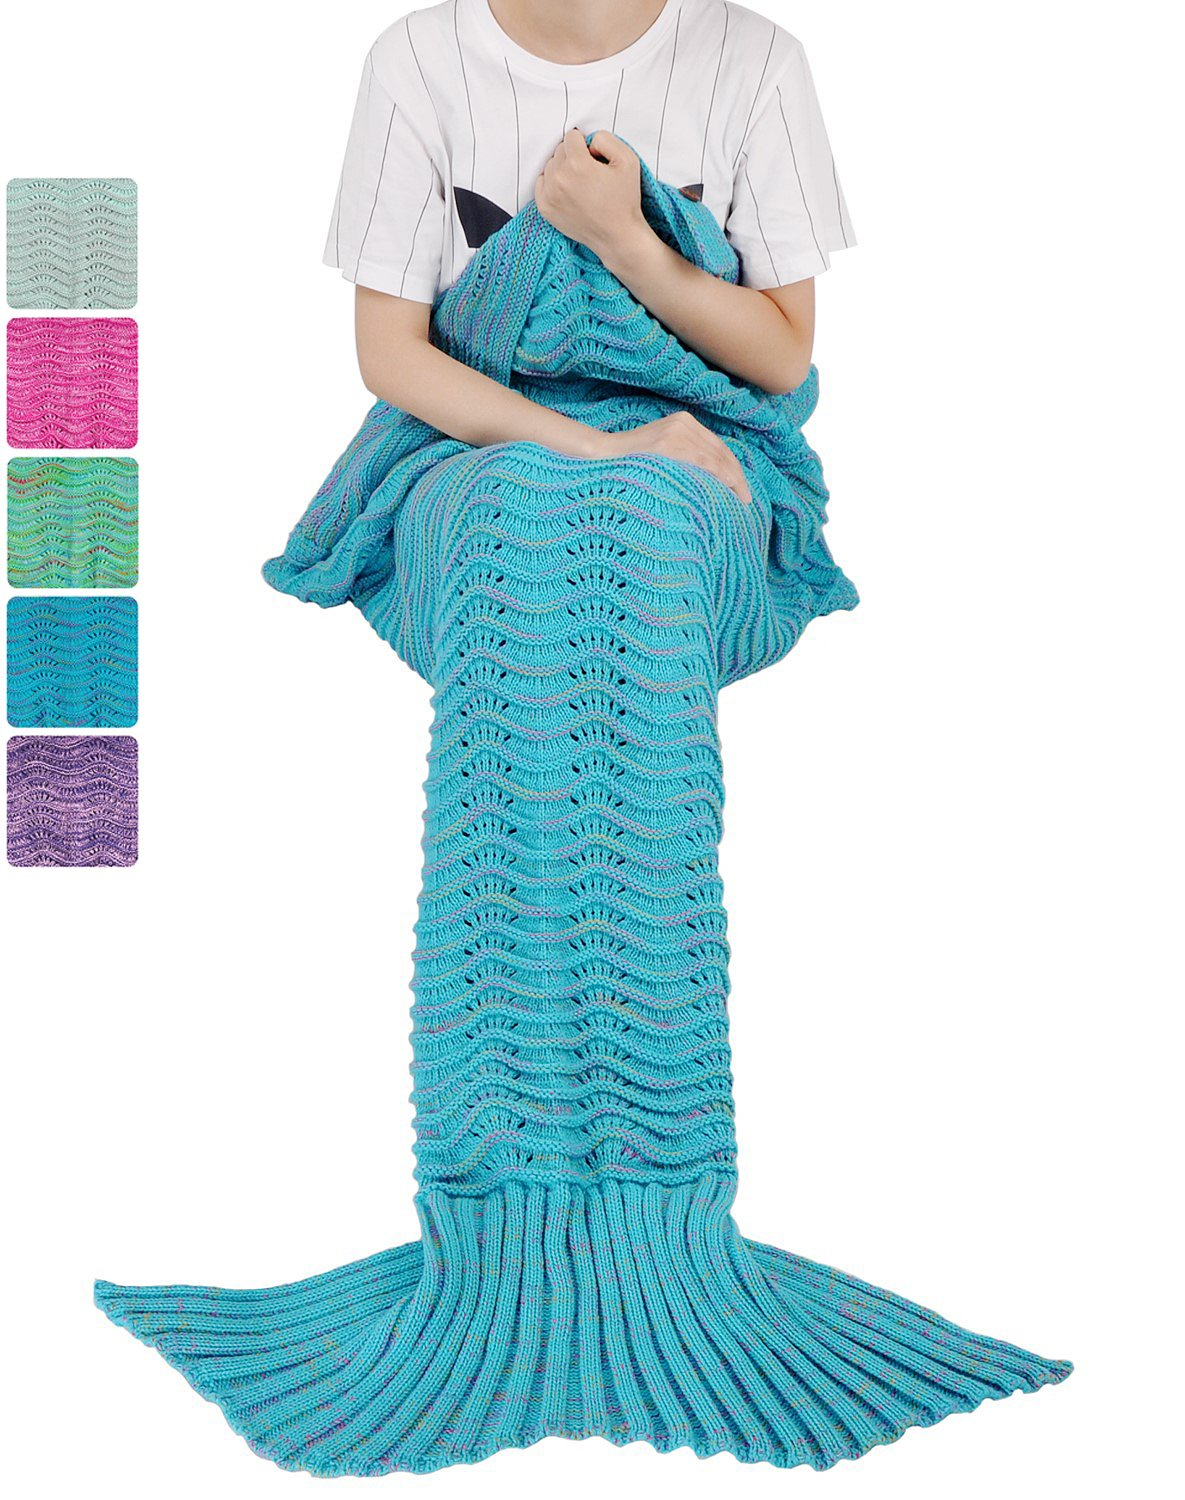 Mermaid Tail Blanket for Teen Girls with Anti-slip Neck Strap Wave Pattern | Soft Sleeping Bag for All Seasons Blue